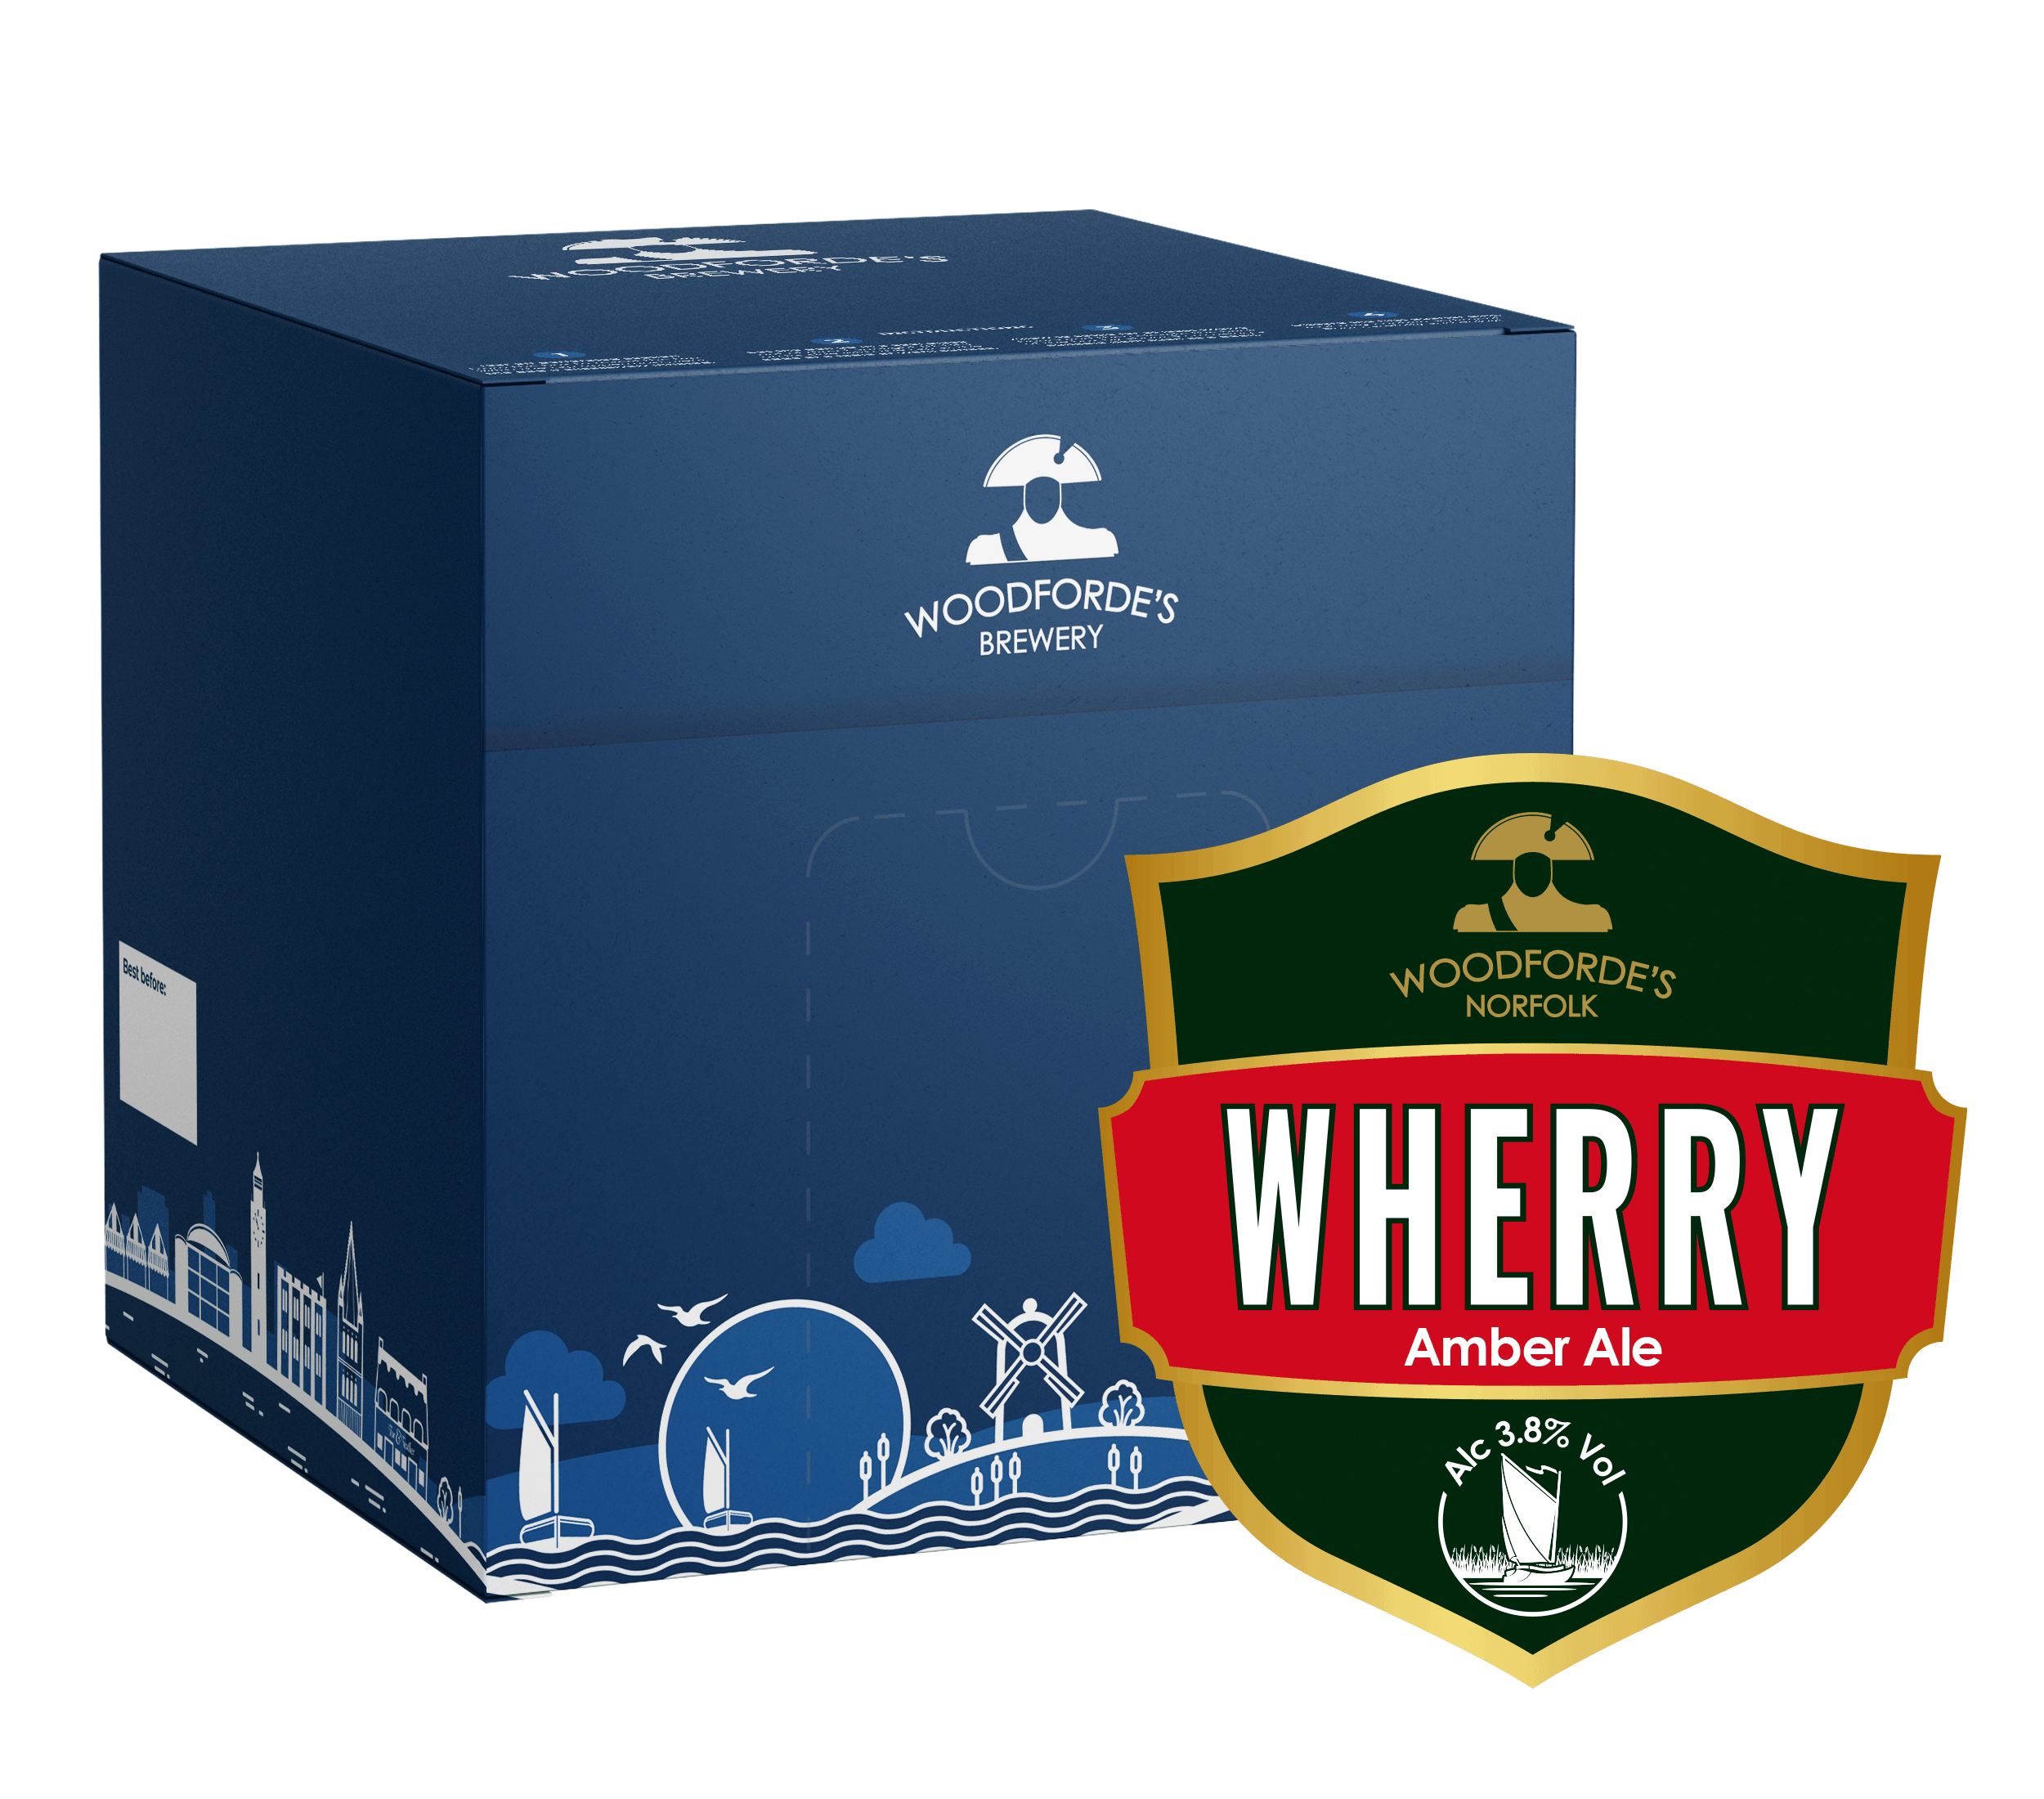 Wherry 18 pint Beer Box | Woodforde's Brewery